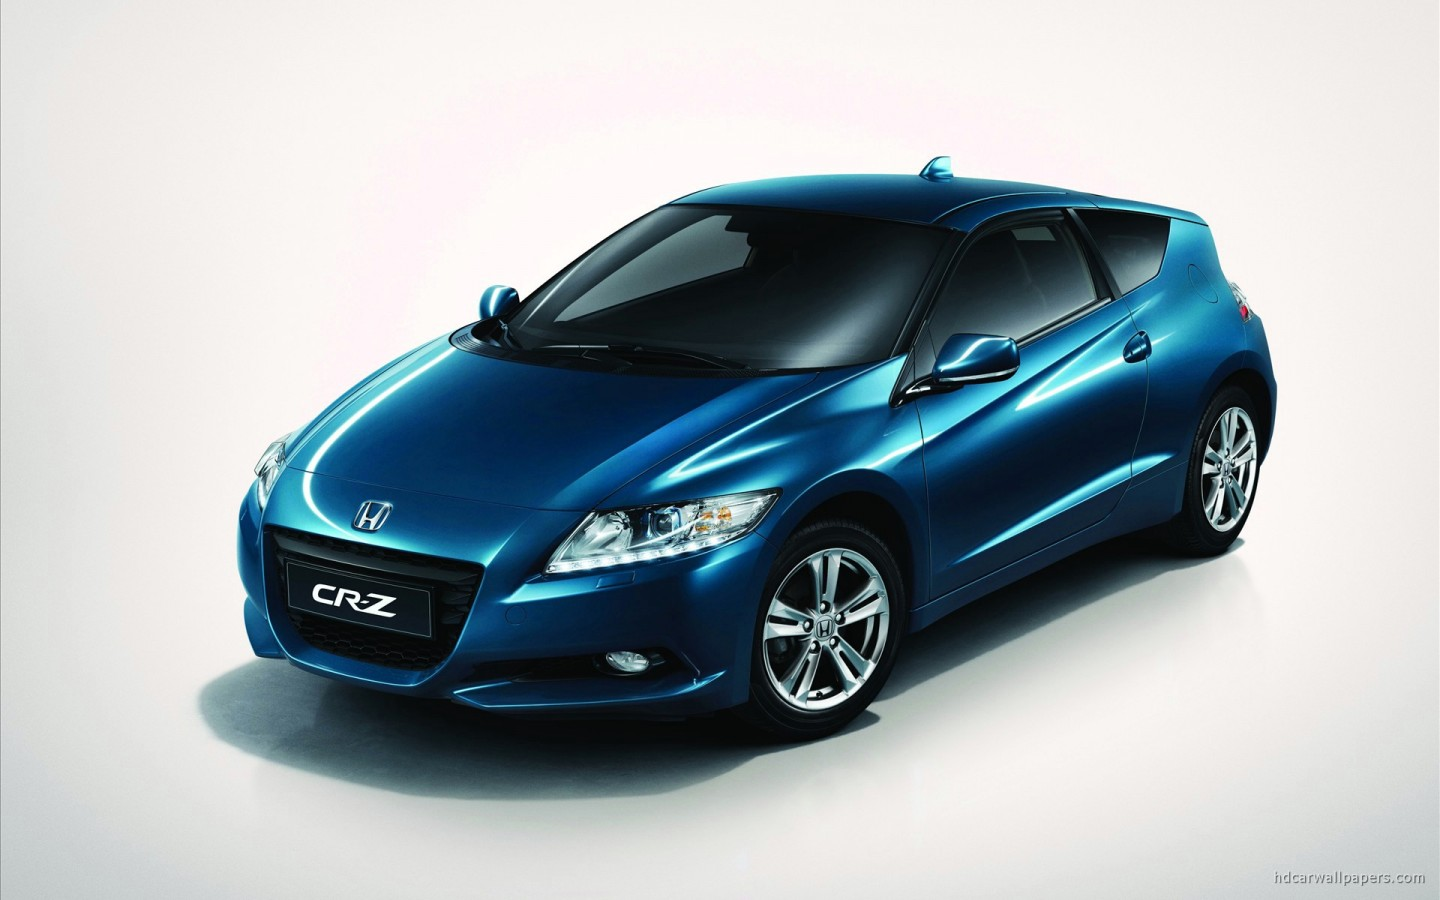 2011 Honda Cr Z Sport Hybrid Coupe 2 Wallpaper Hd Car